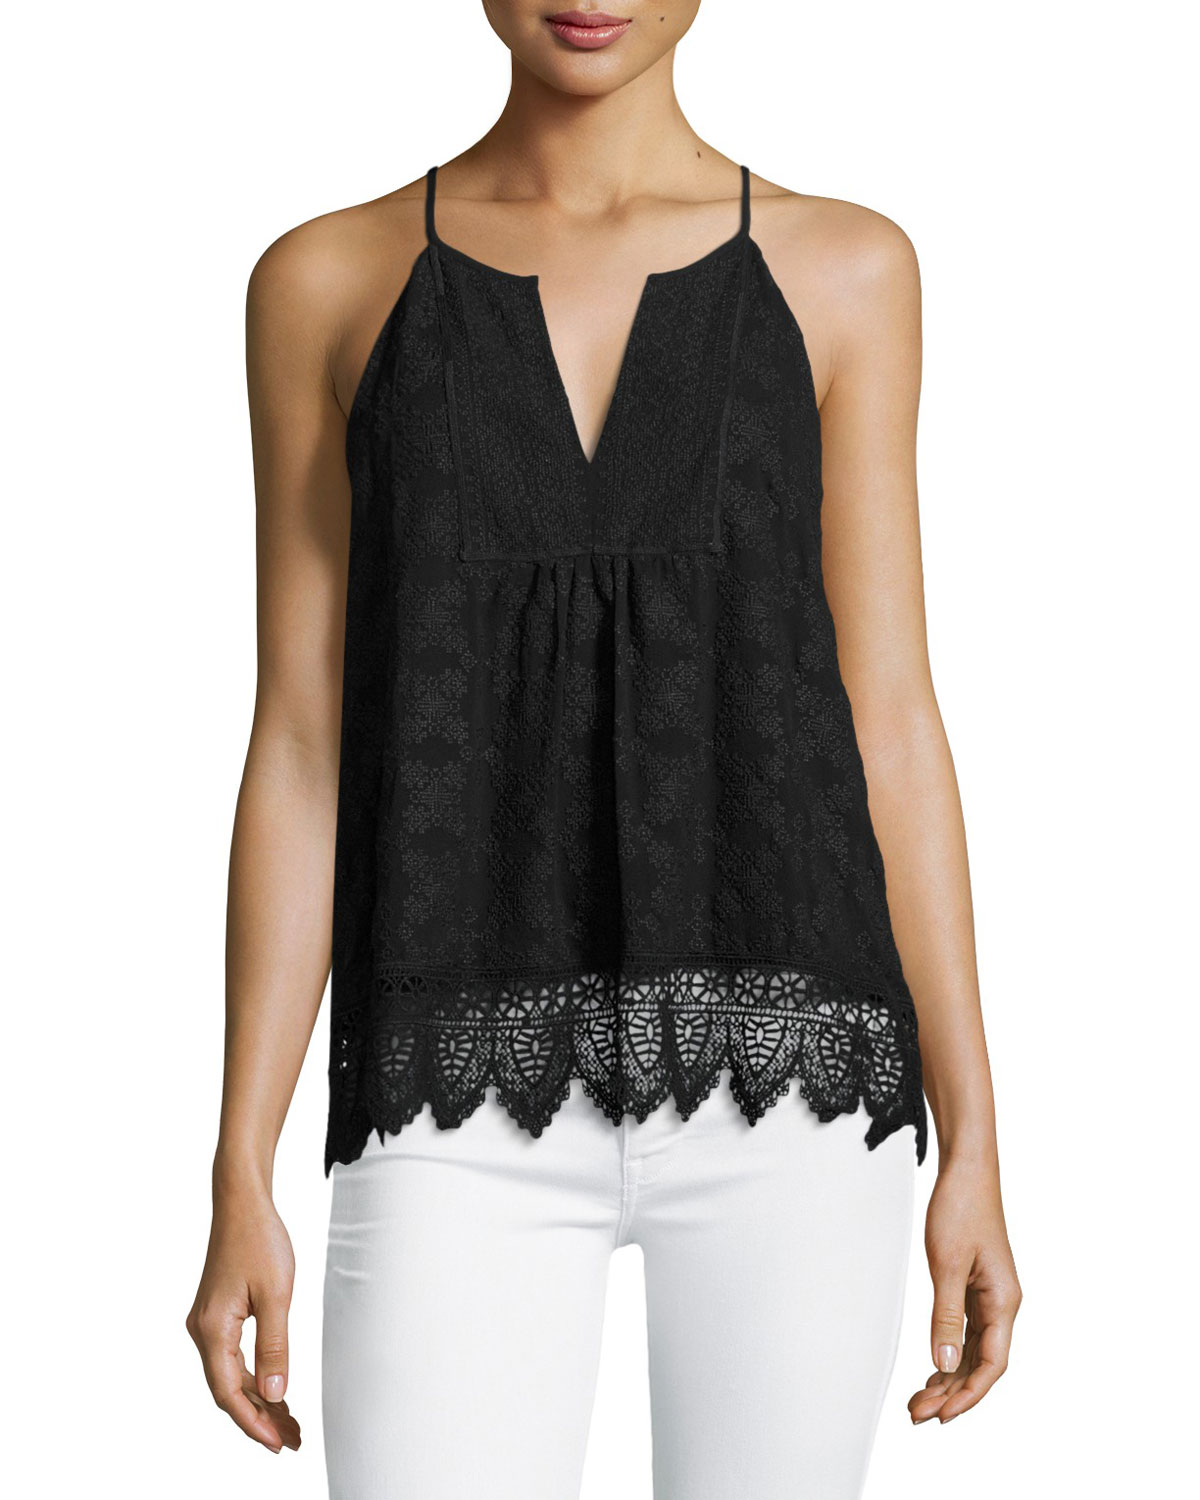 Ember Sleeveless Lace Top, Black